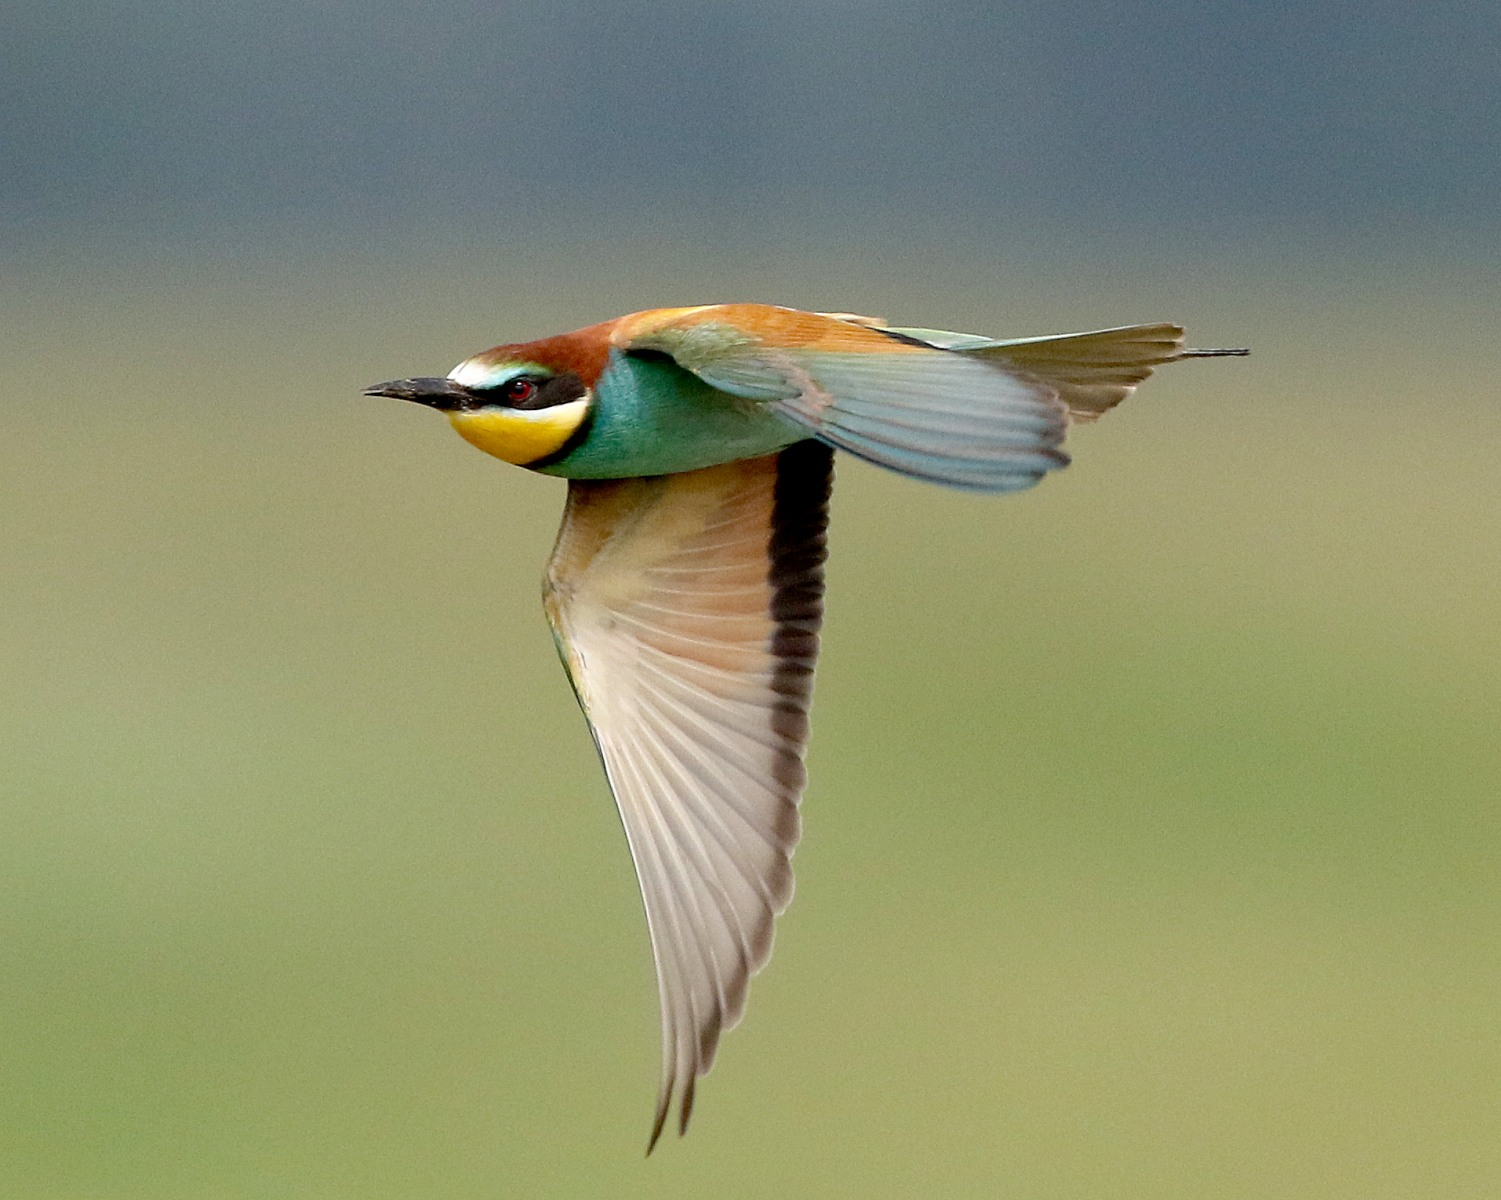 European Bee-eater - Hungary